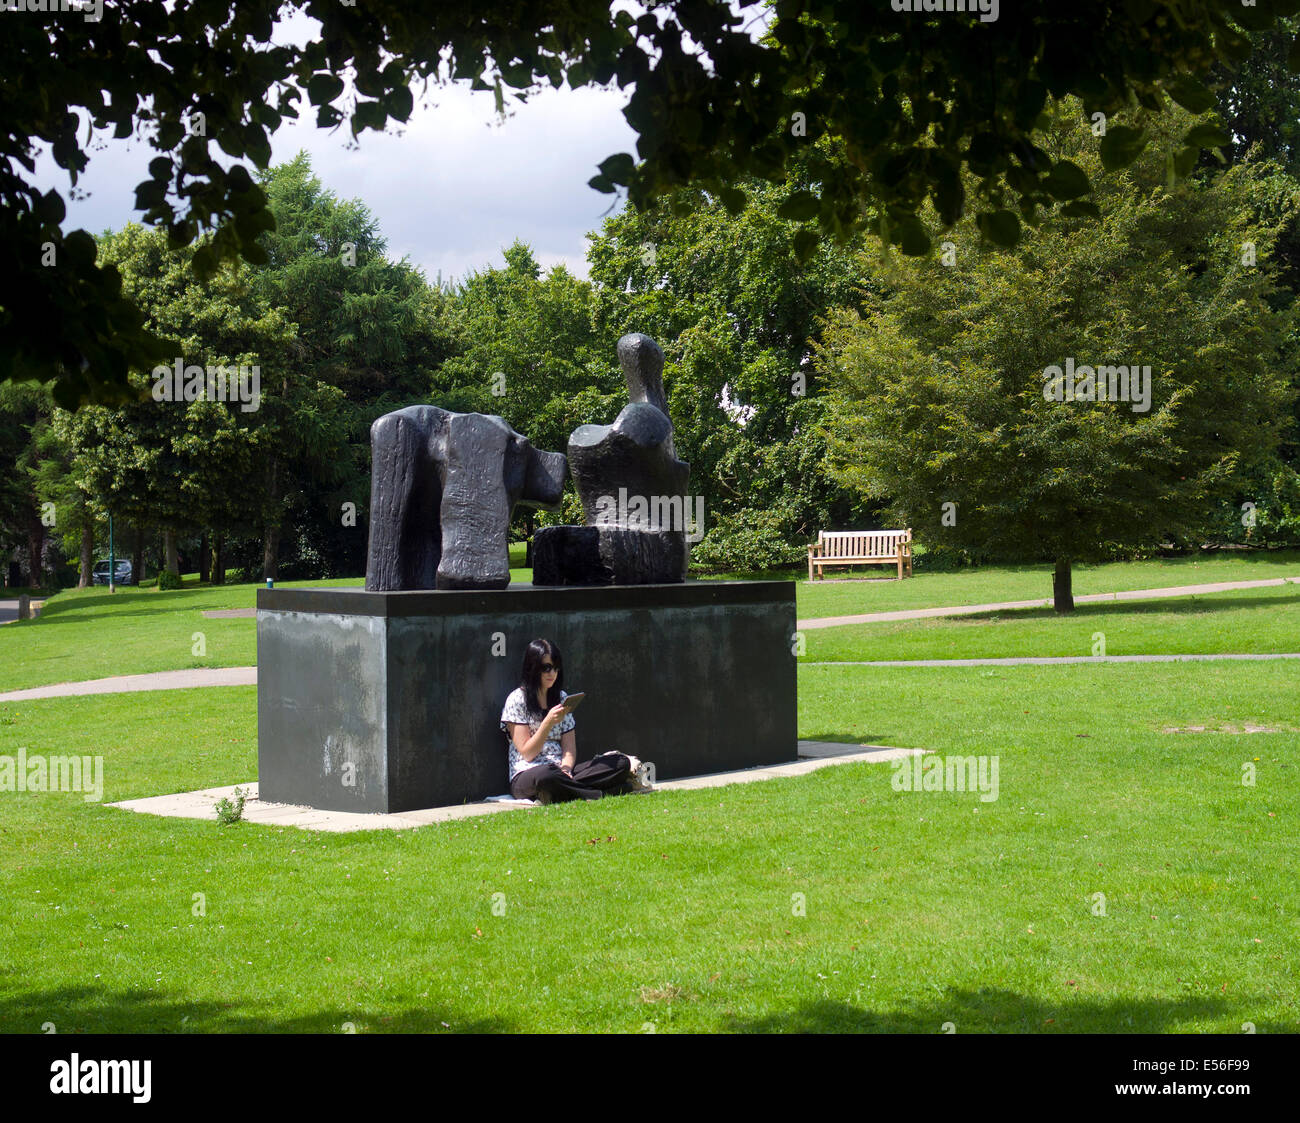 Bronze sculpture 1961 by Henry Moore sited by The Sainsbury Centre Norwich. Student reading leaning on the plynth - Stock Image